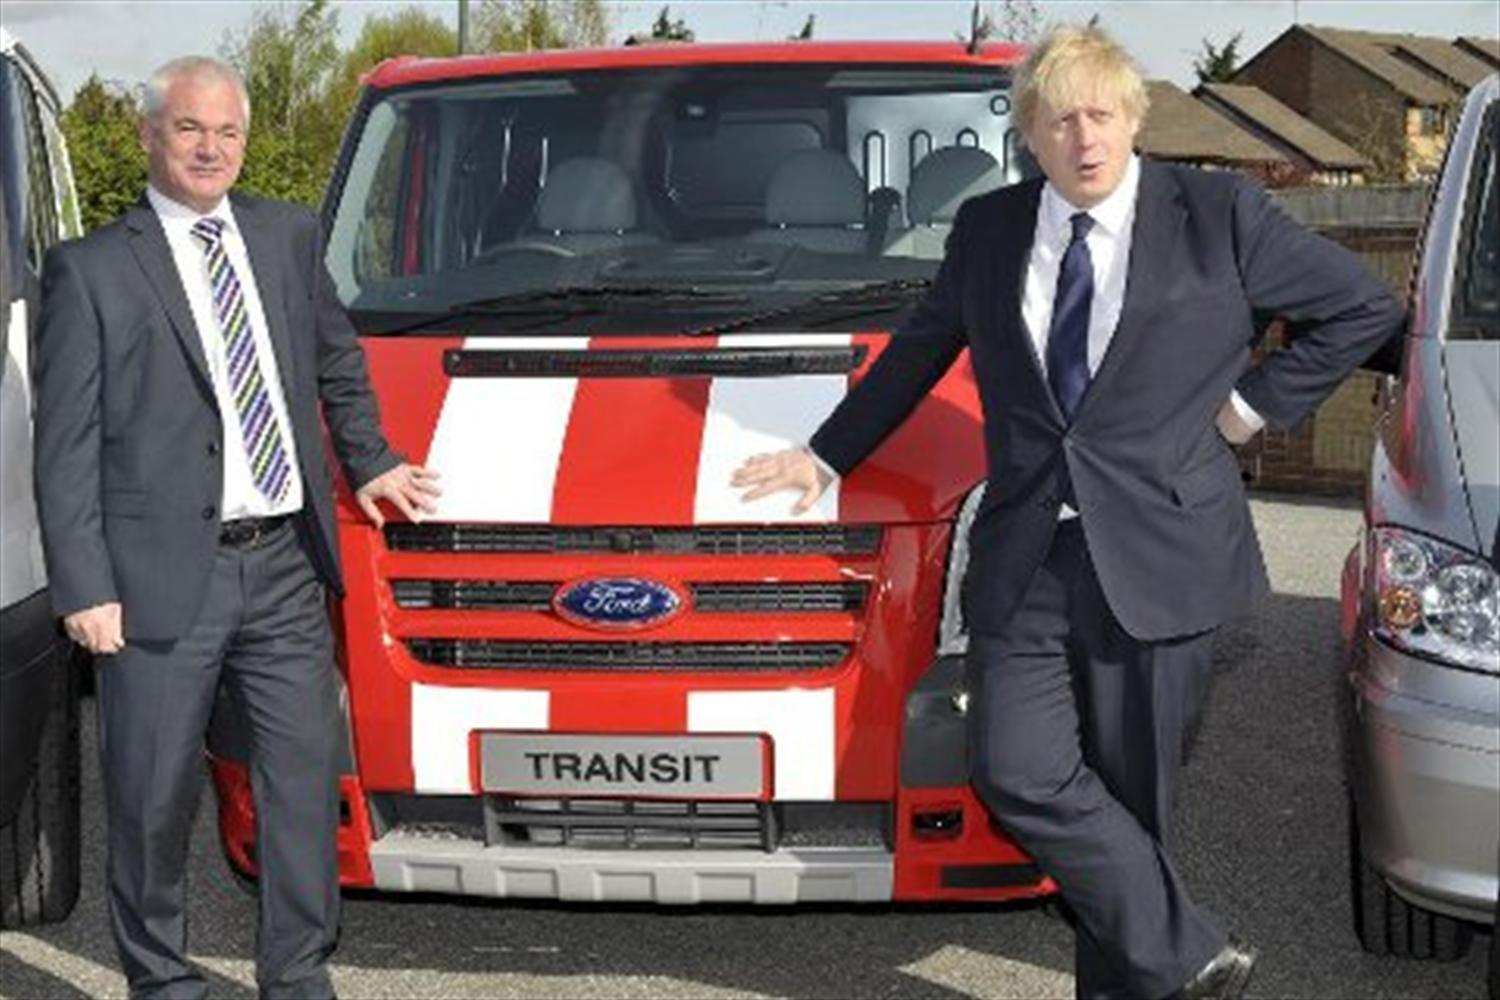 Ford launches van scrappage scheme